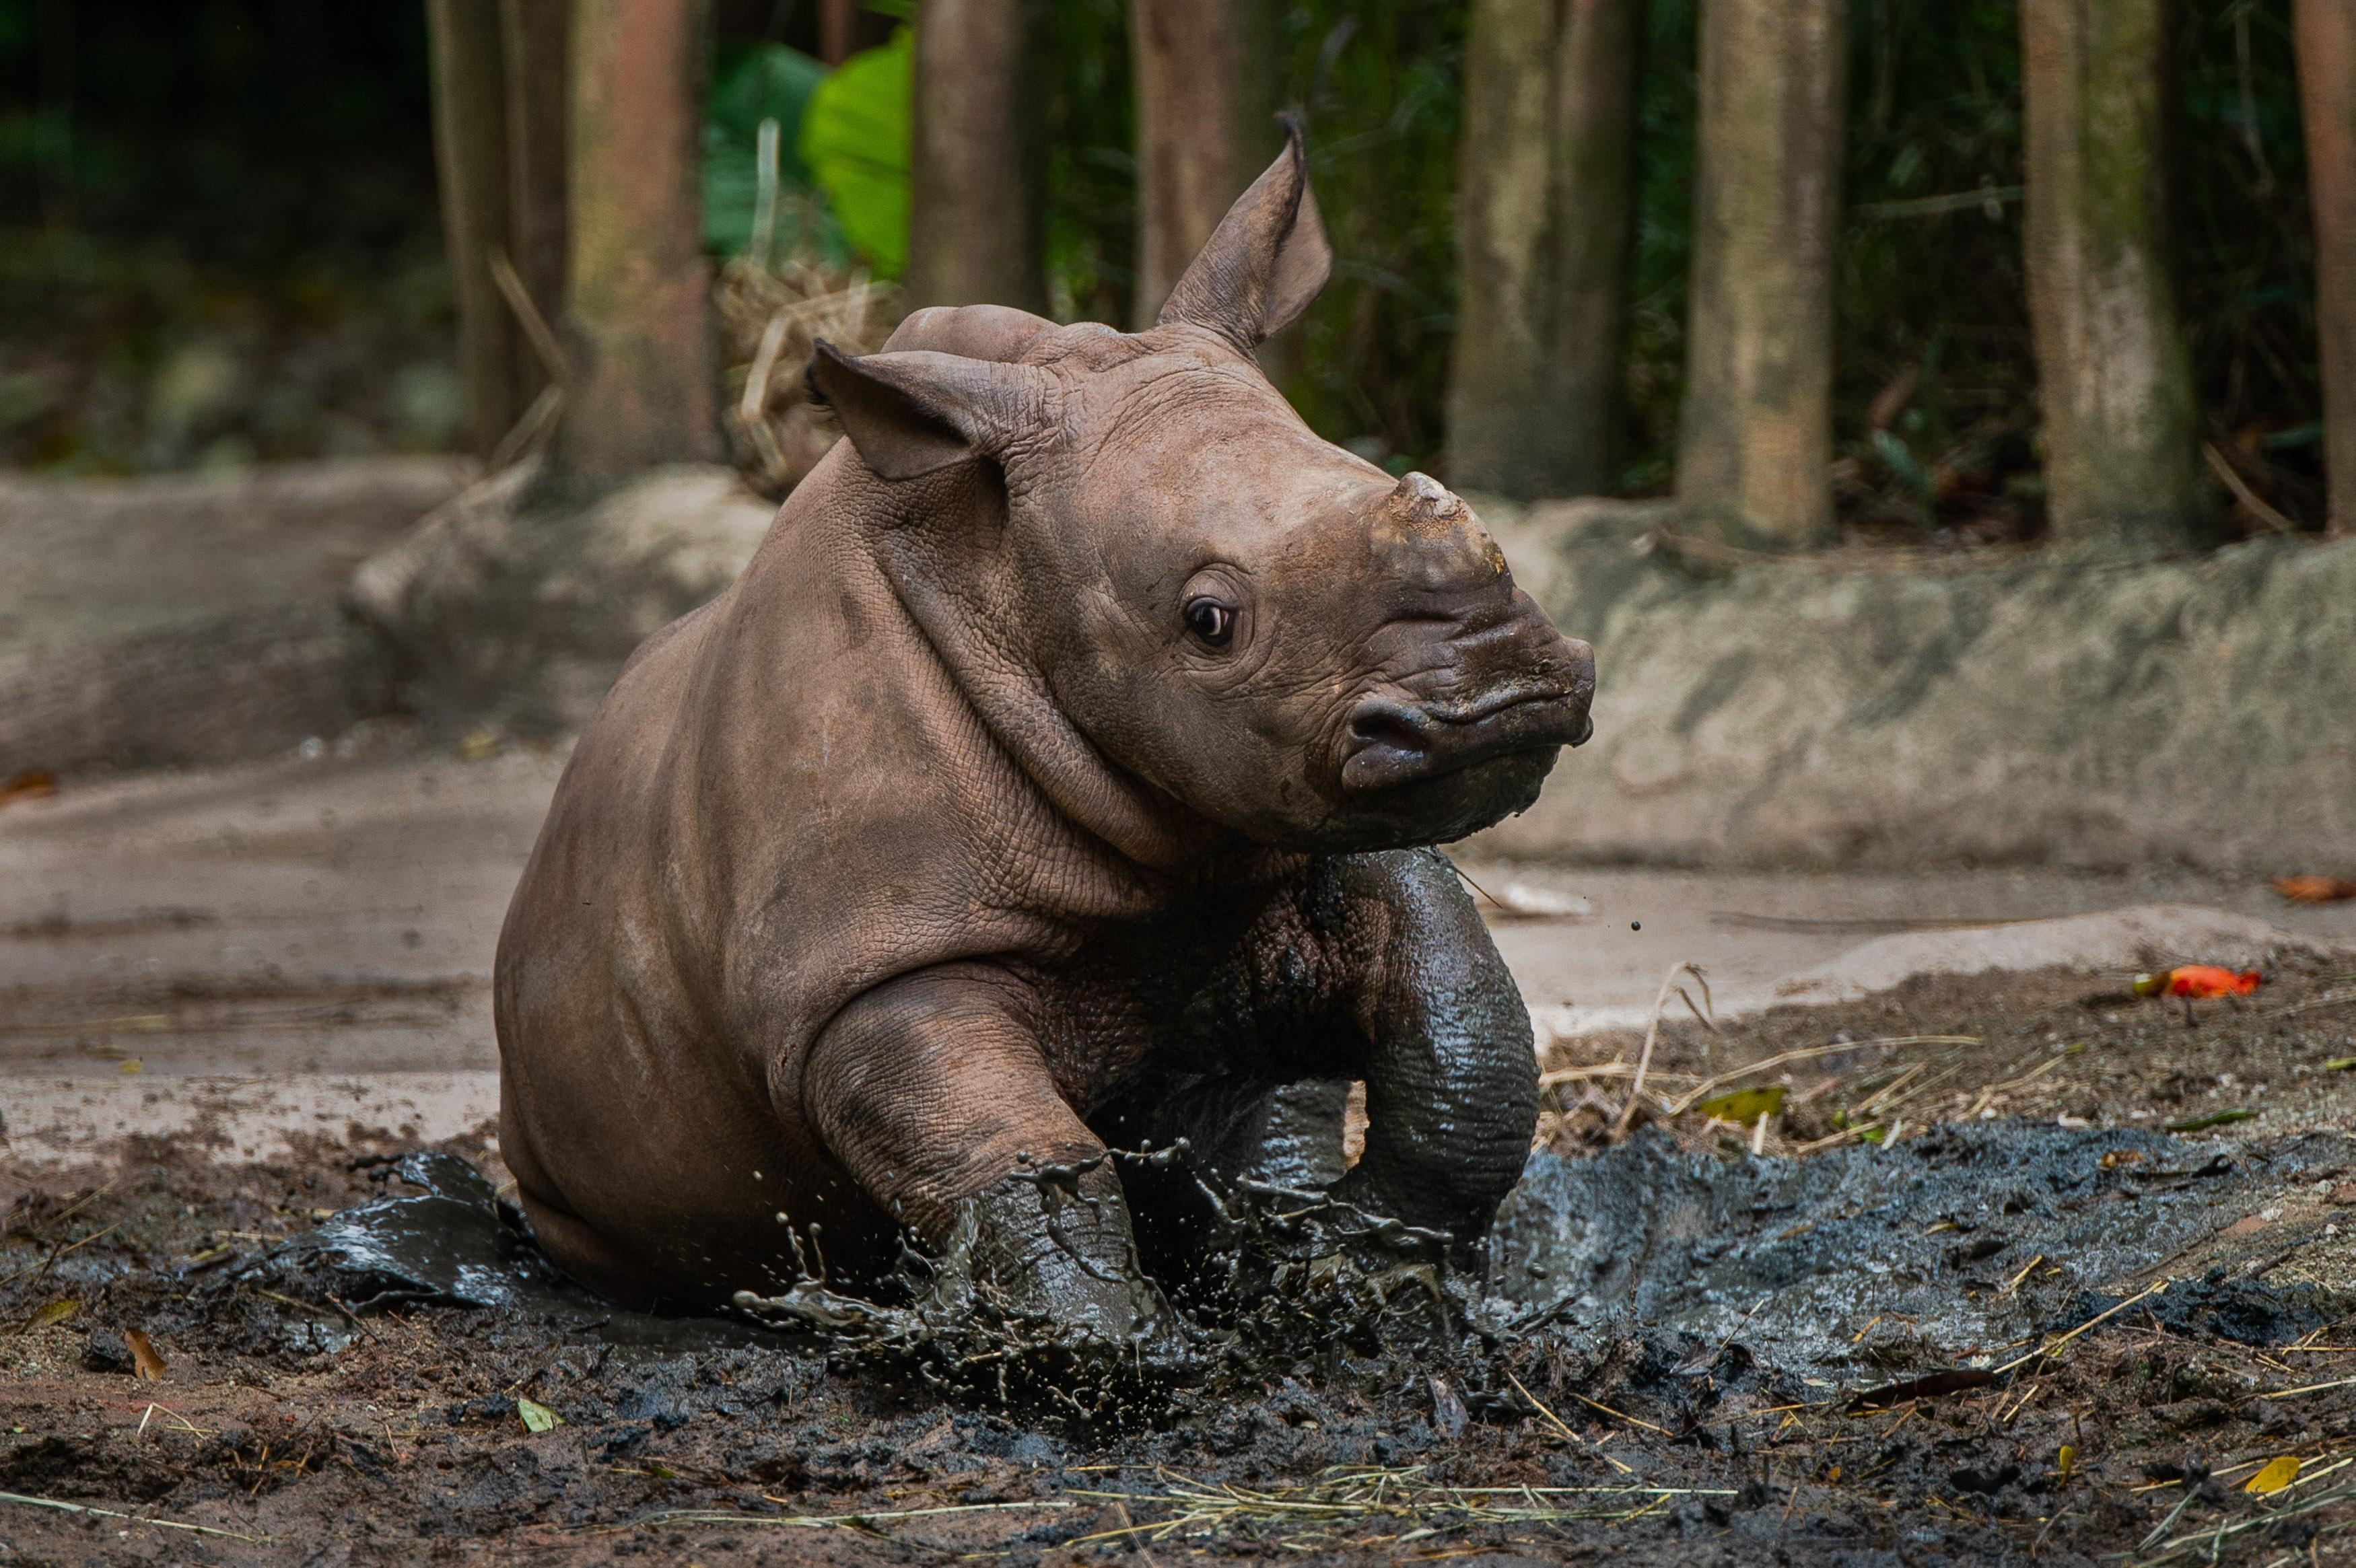 660 newborns welcomed at Singapore's wildlife attractions last year